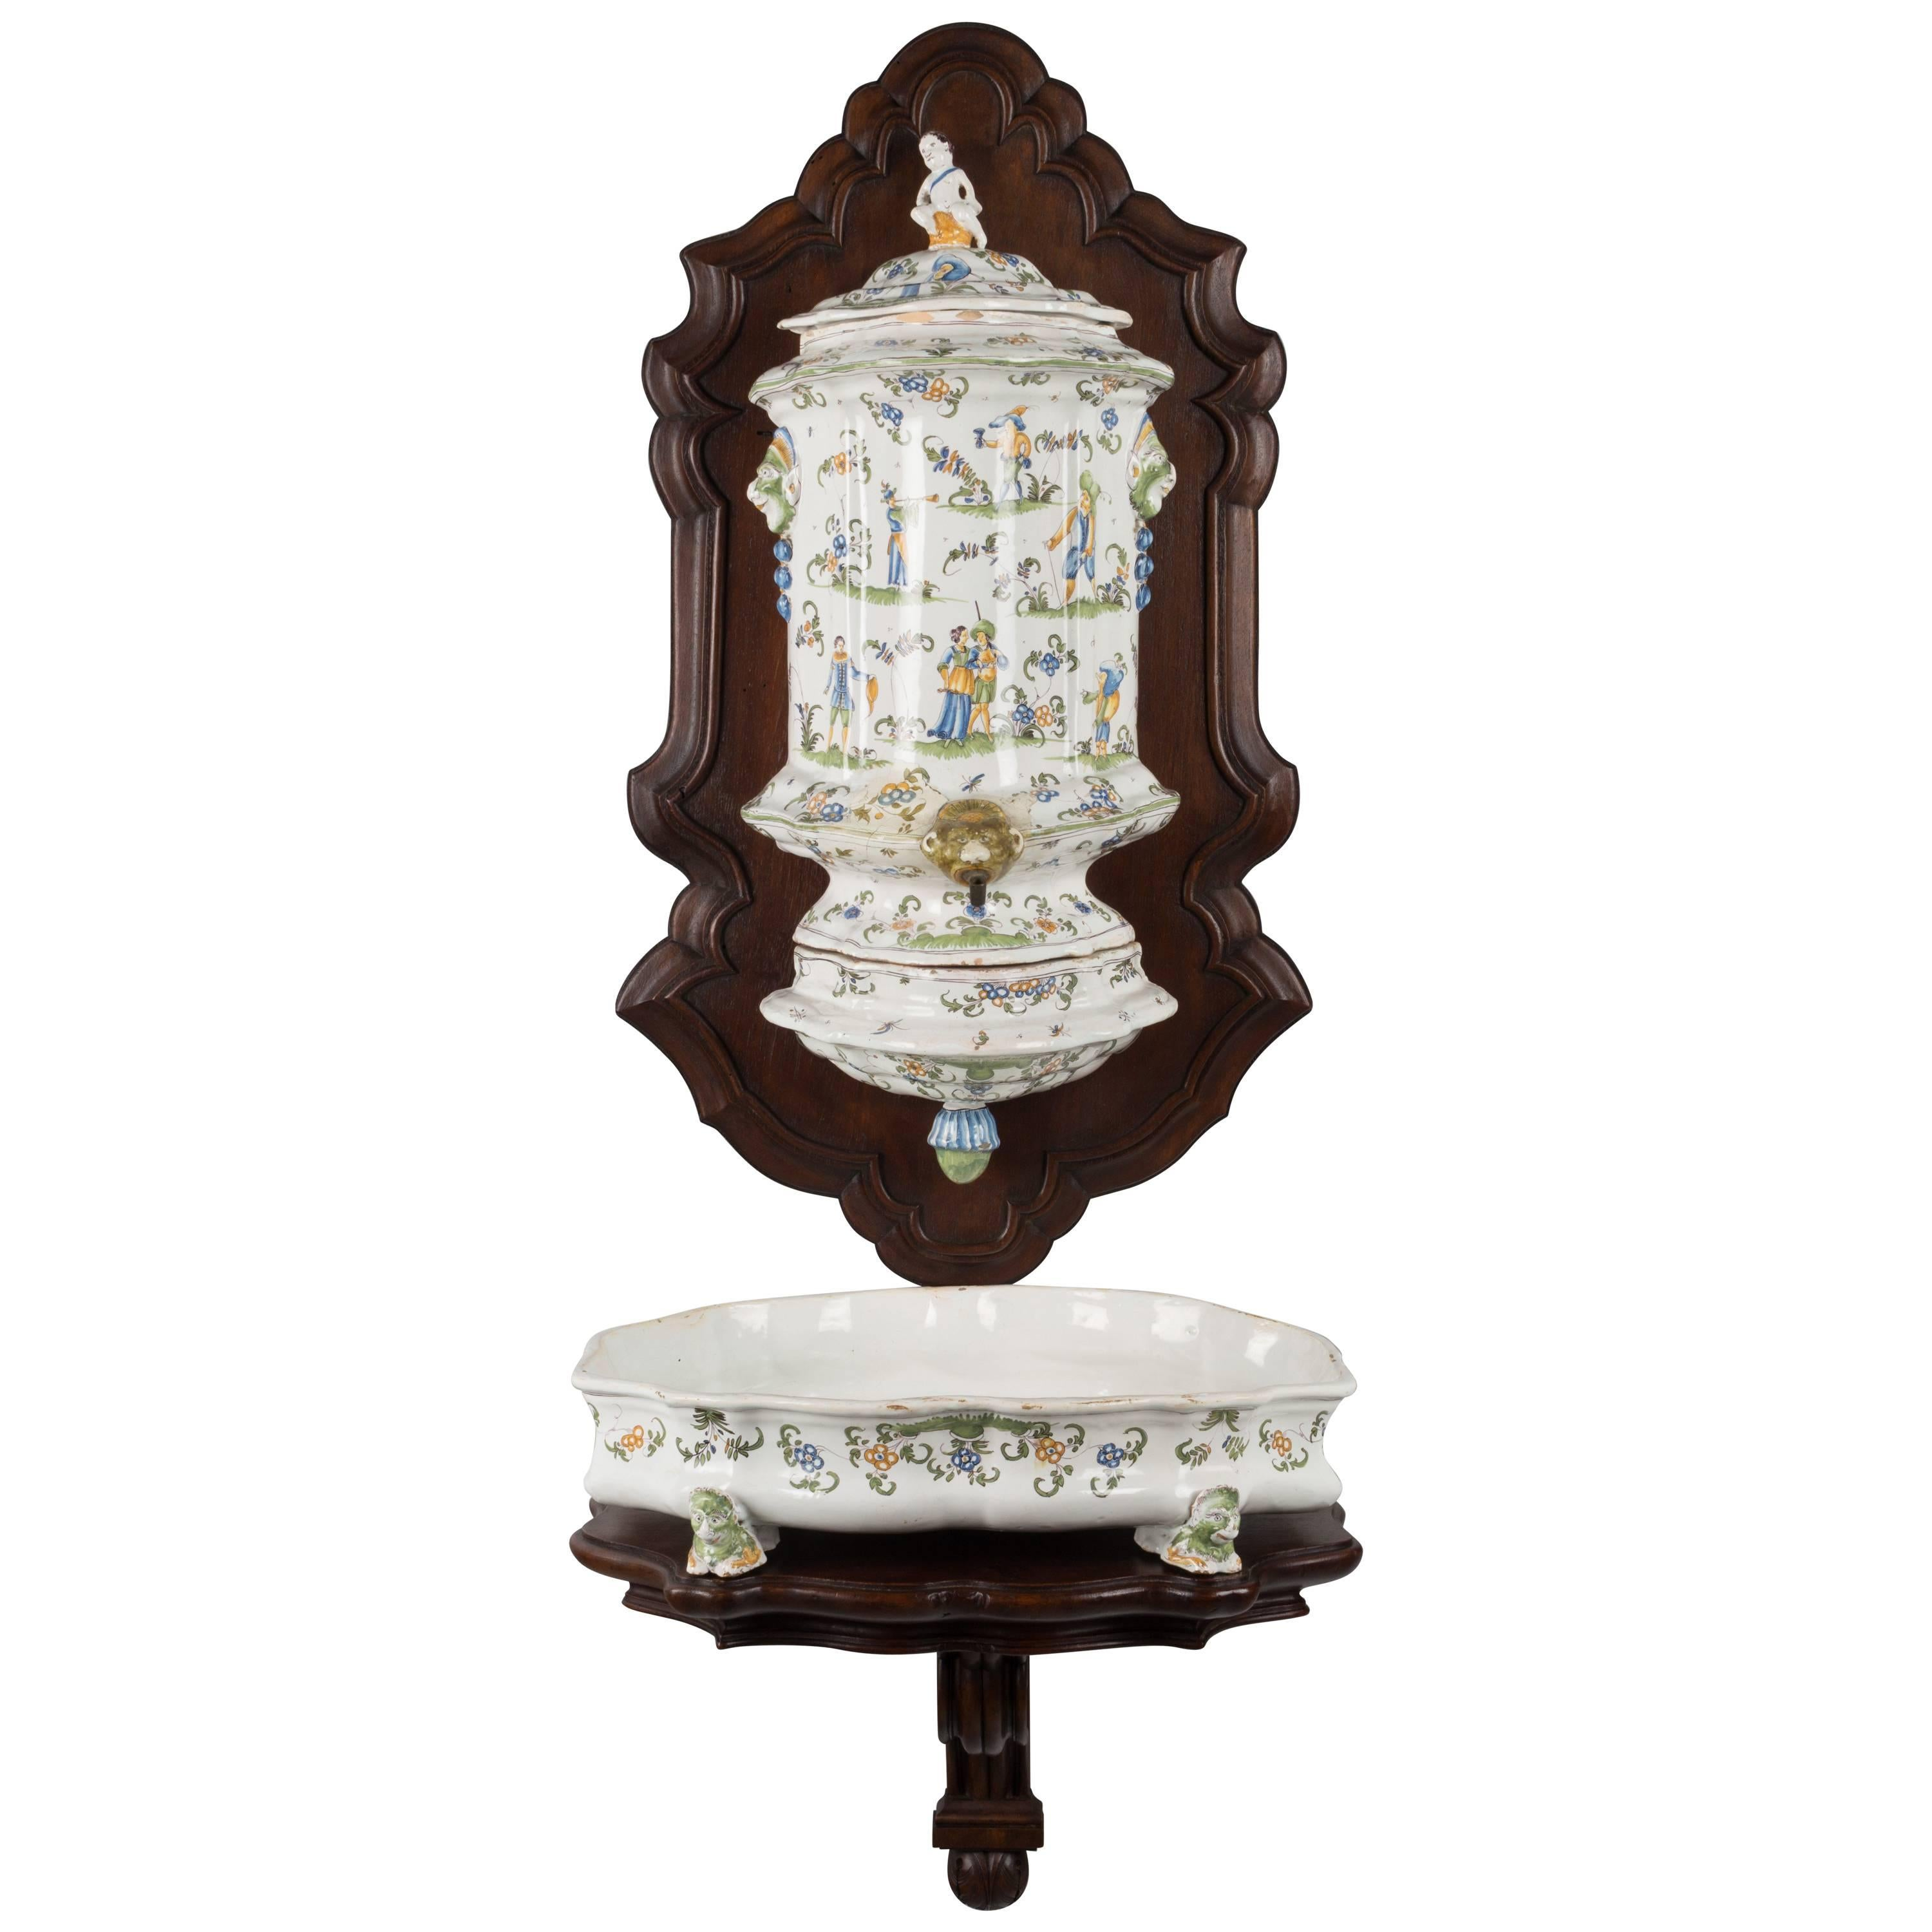 18th Century French Faience Lavabo from Moustiers